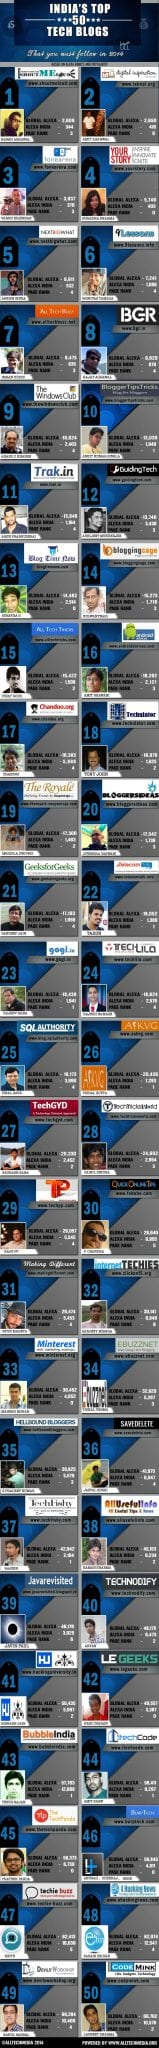 Top 50 Tech Blogs in India that you must follow in 2019 [Infographic]